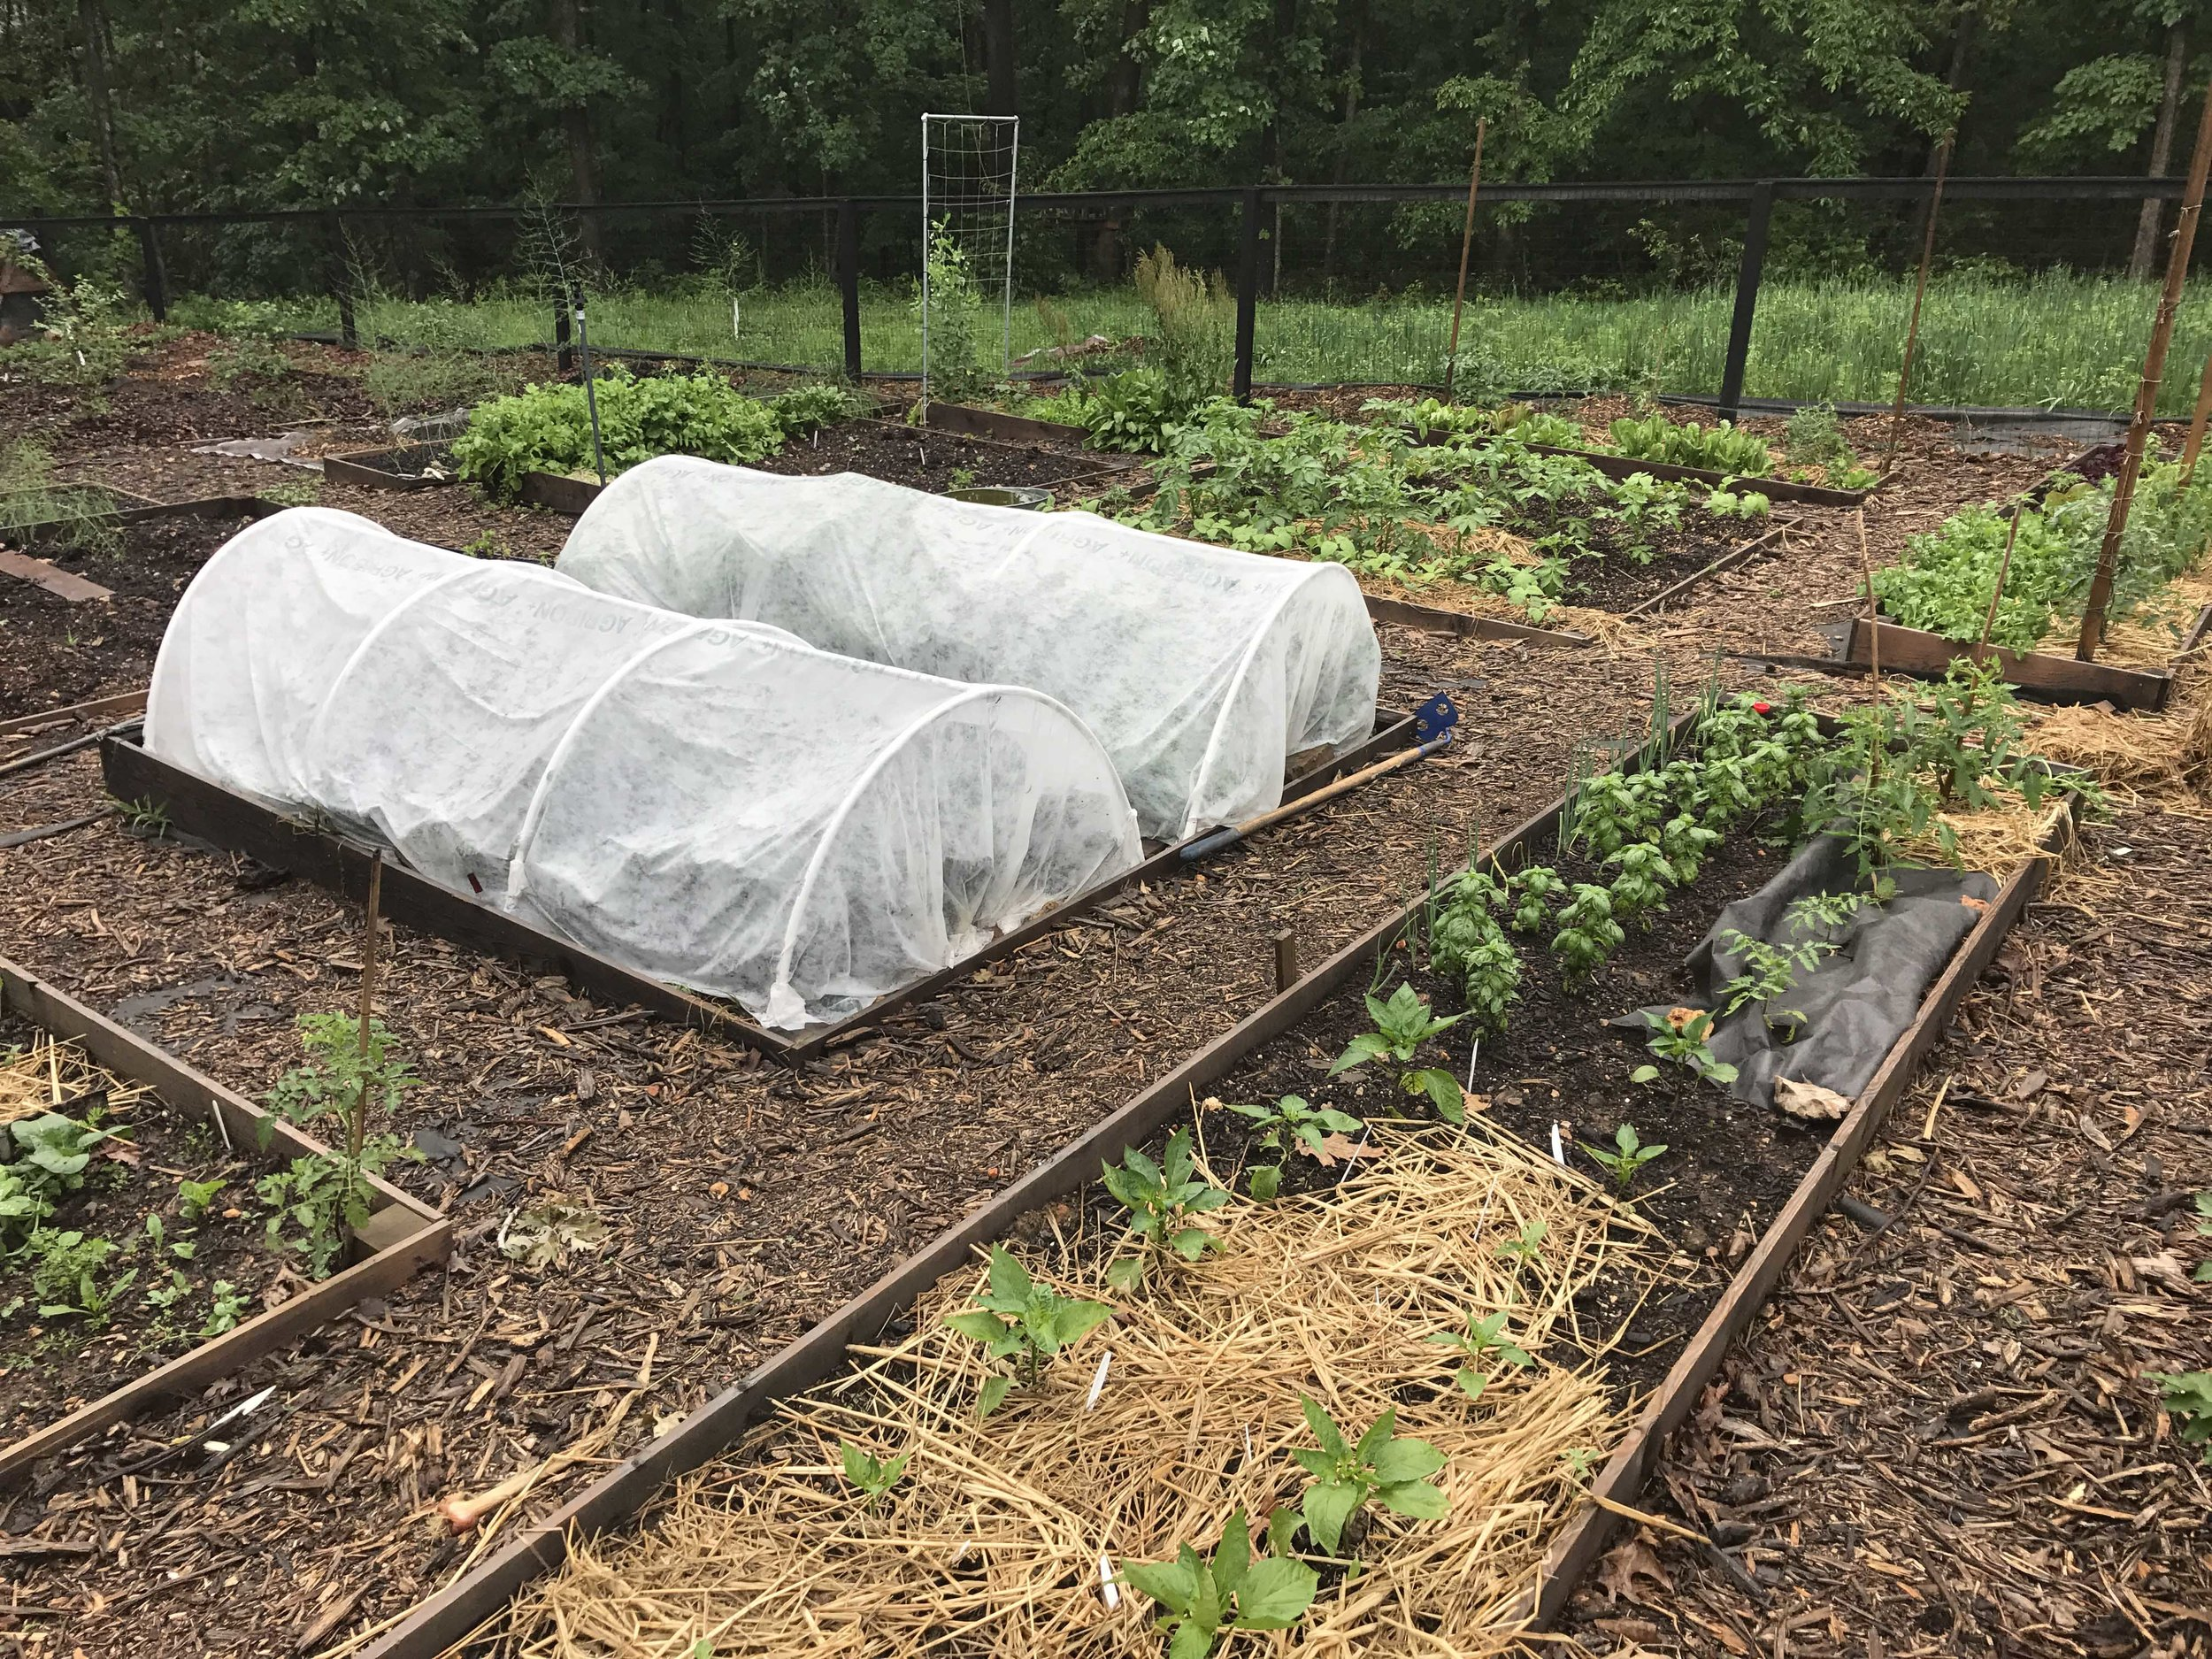 Row Cover on Low tunnels